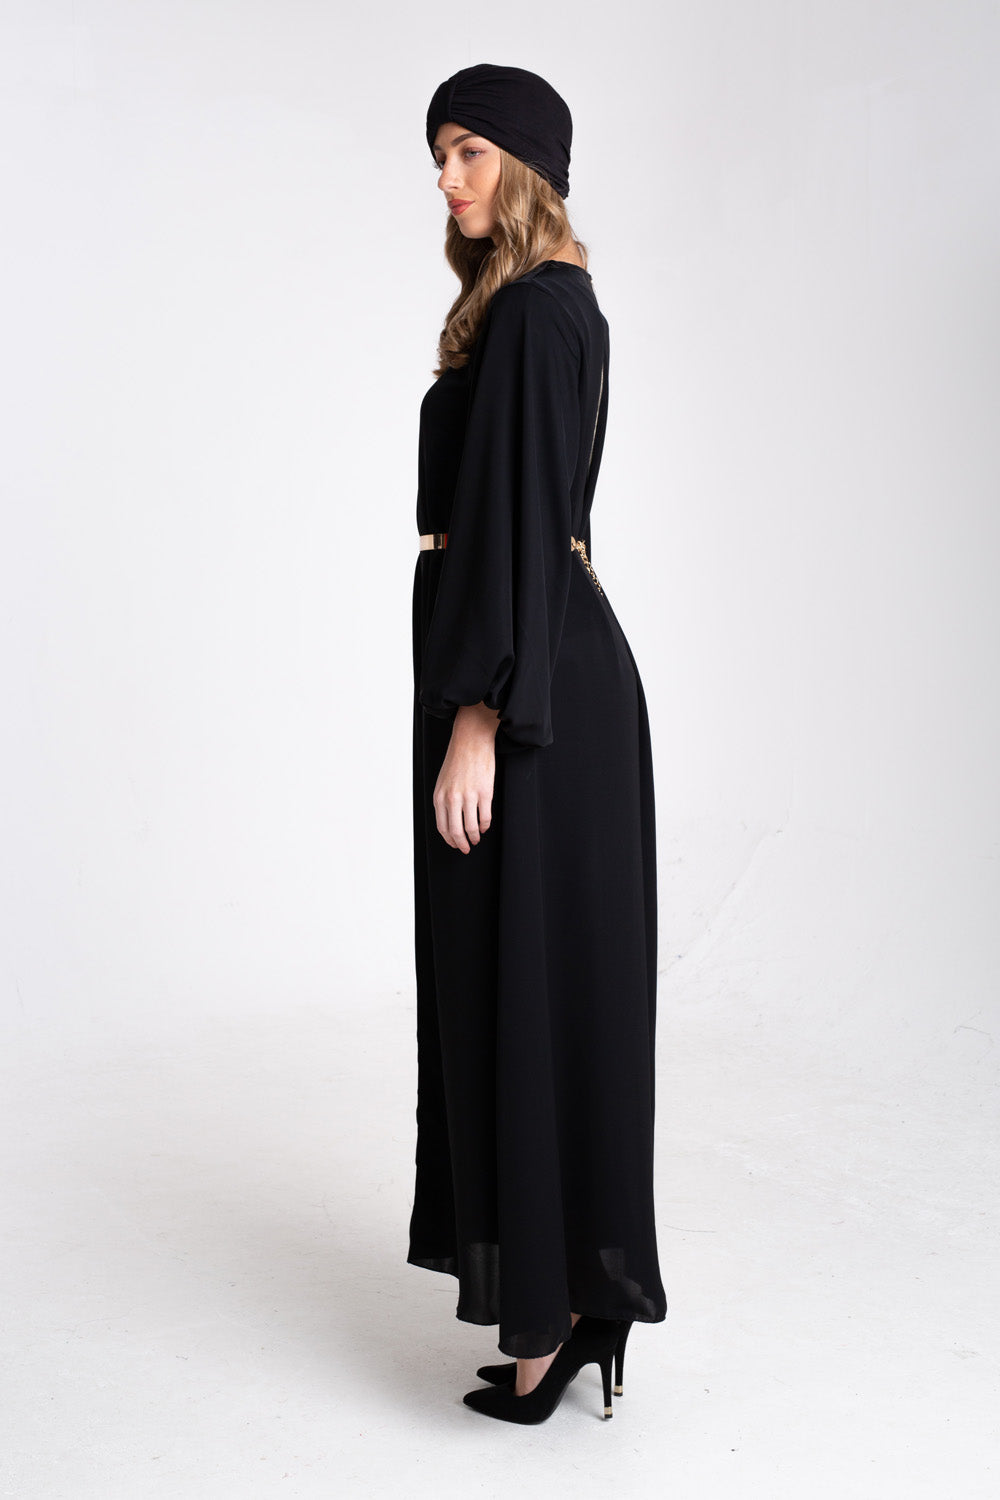 BLACK BUBBLE DRESS ABAYA - Cover Me Collection